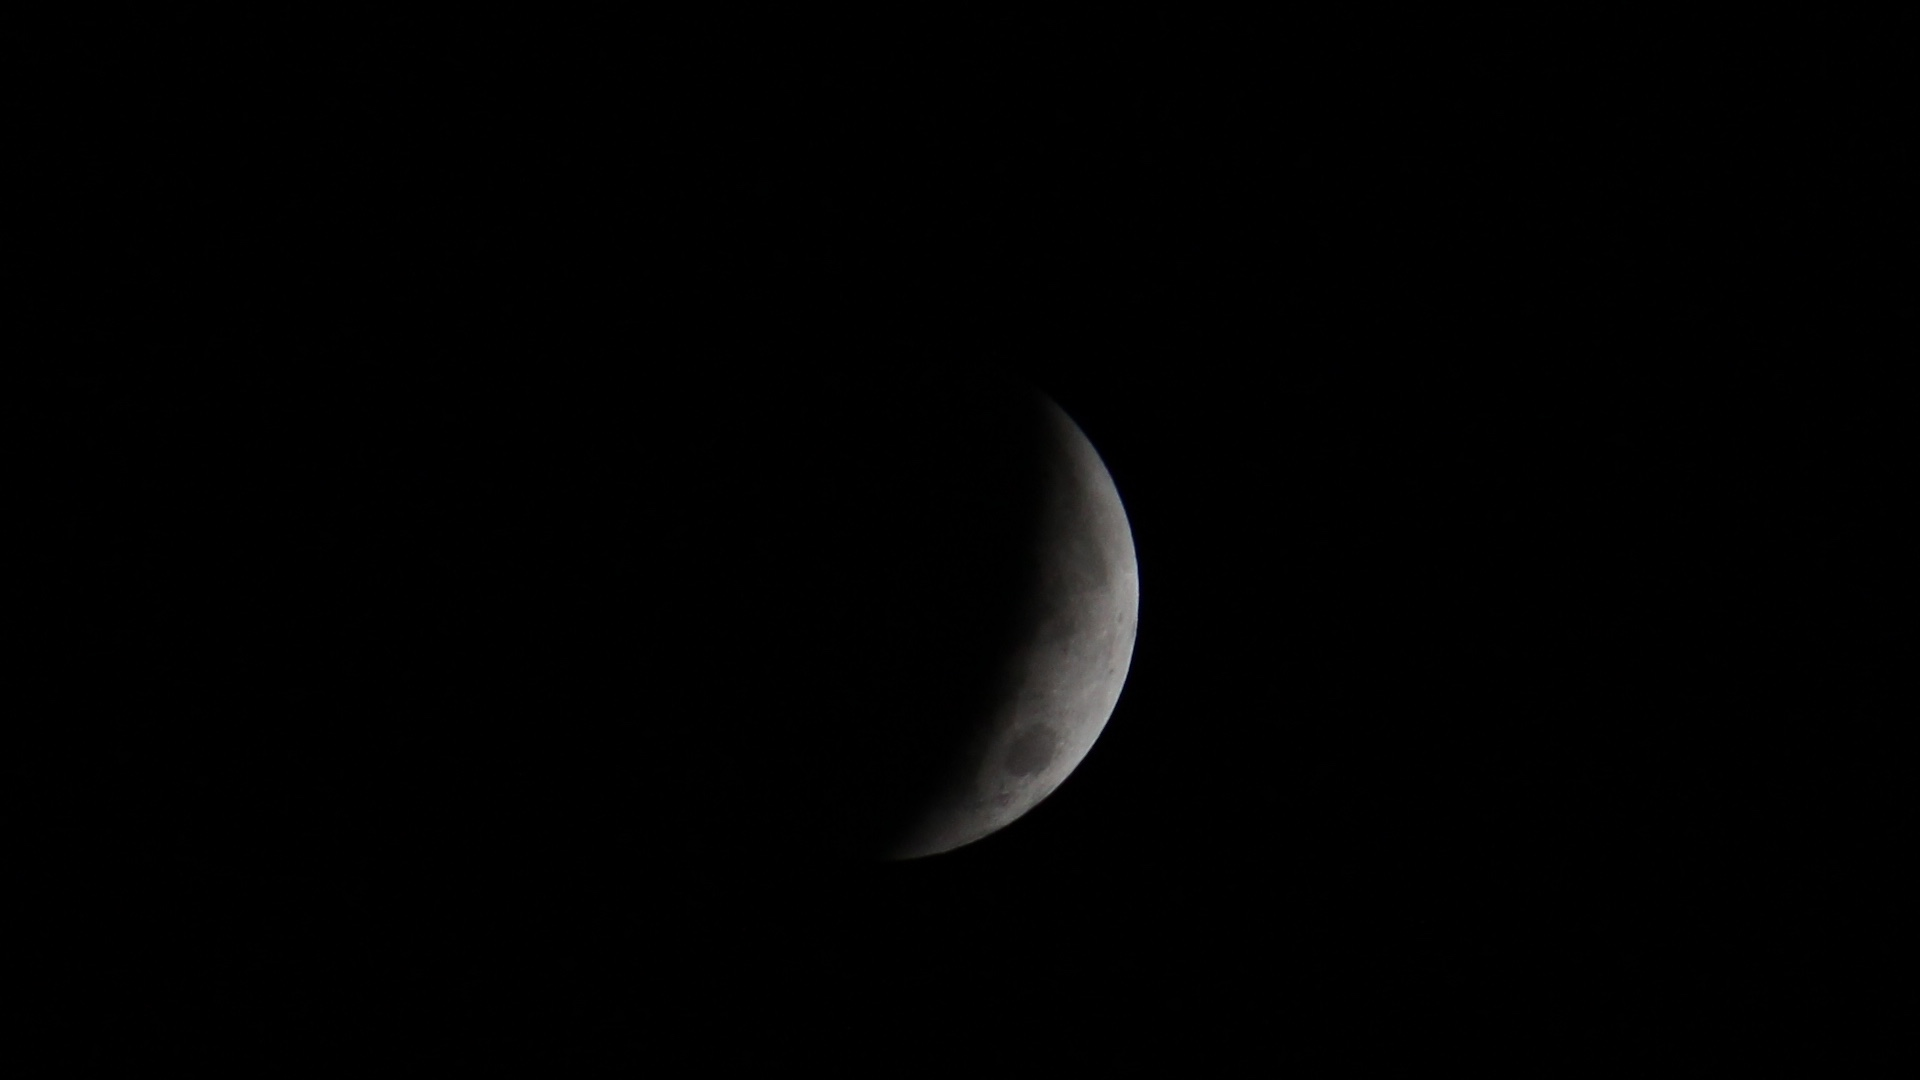 Lunar Eclipse 20141008 7